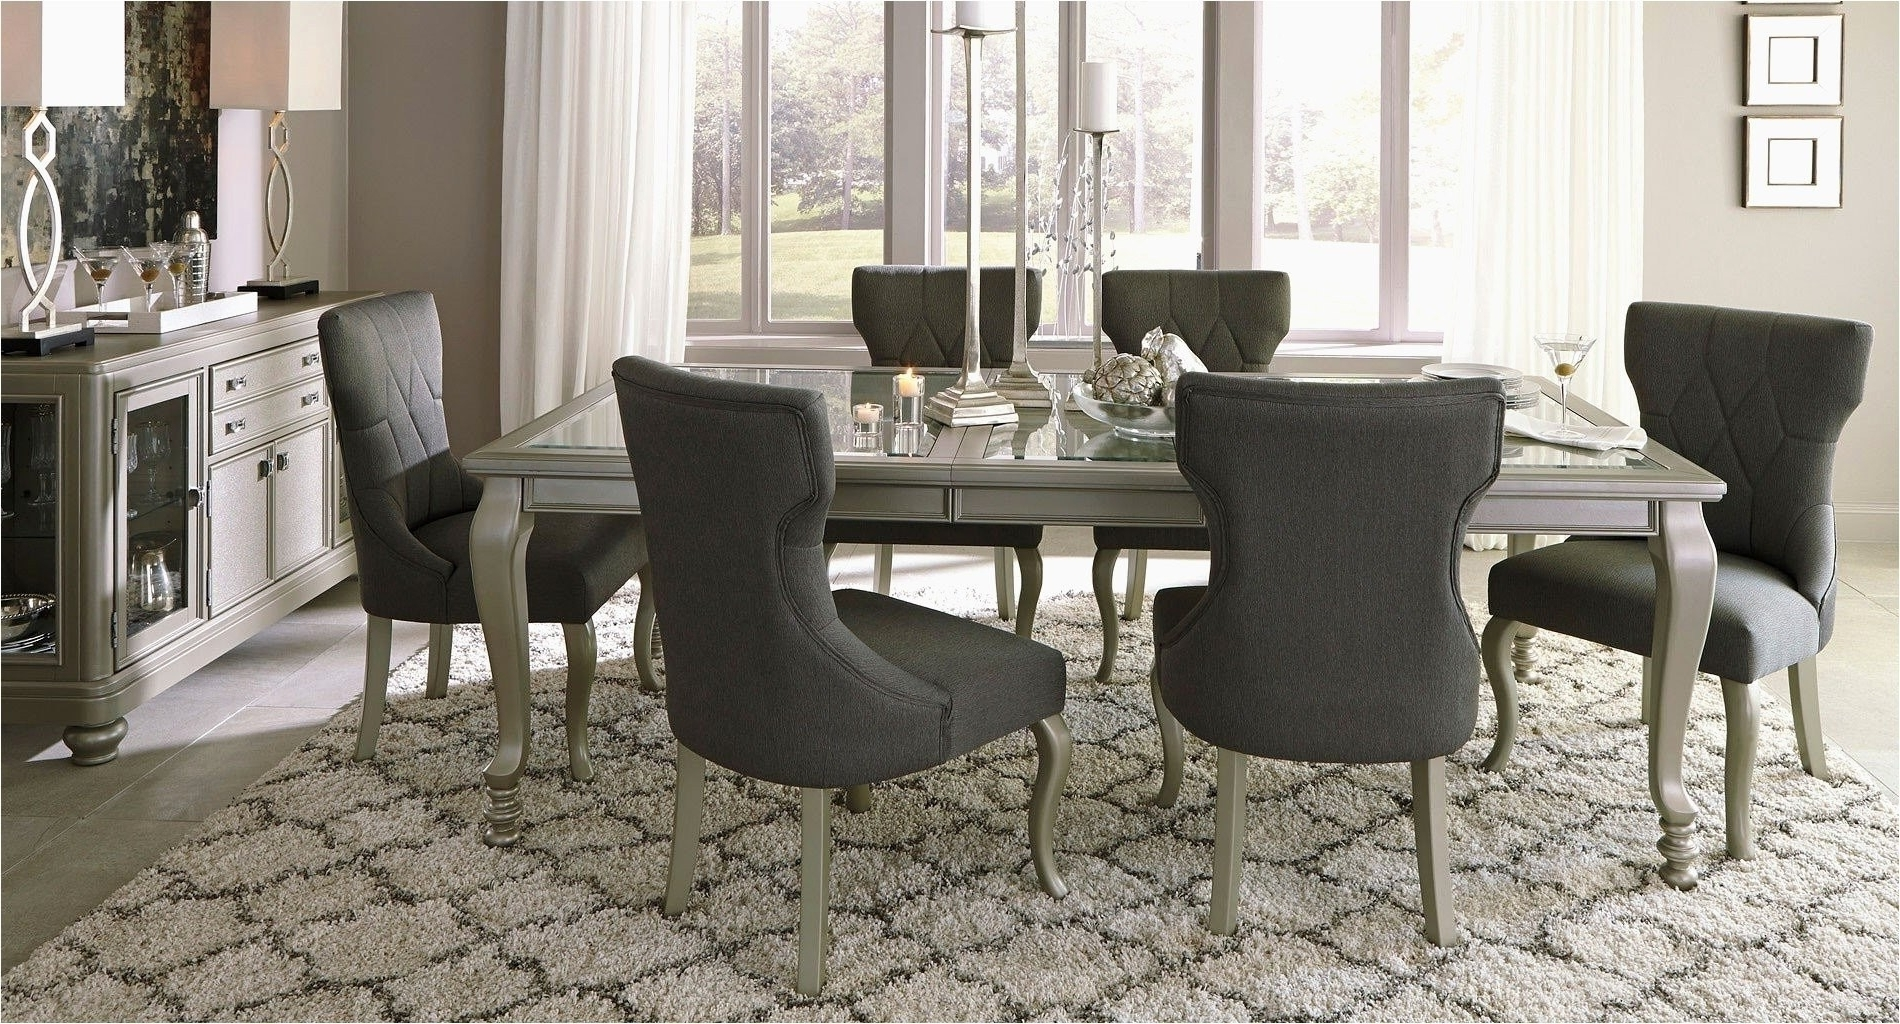 Round Oak Dining Tables And Chairs with Favorite Oval Oak Dining Table And Chairs Beautiful Oval Pedestal Dining